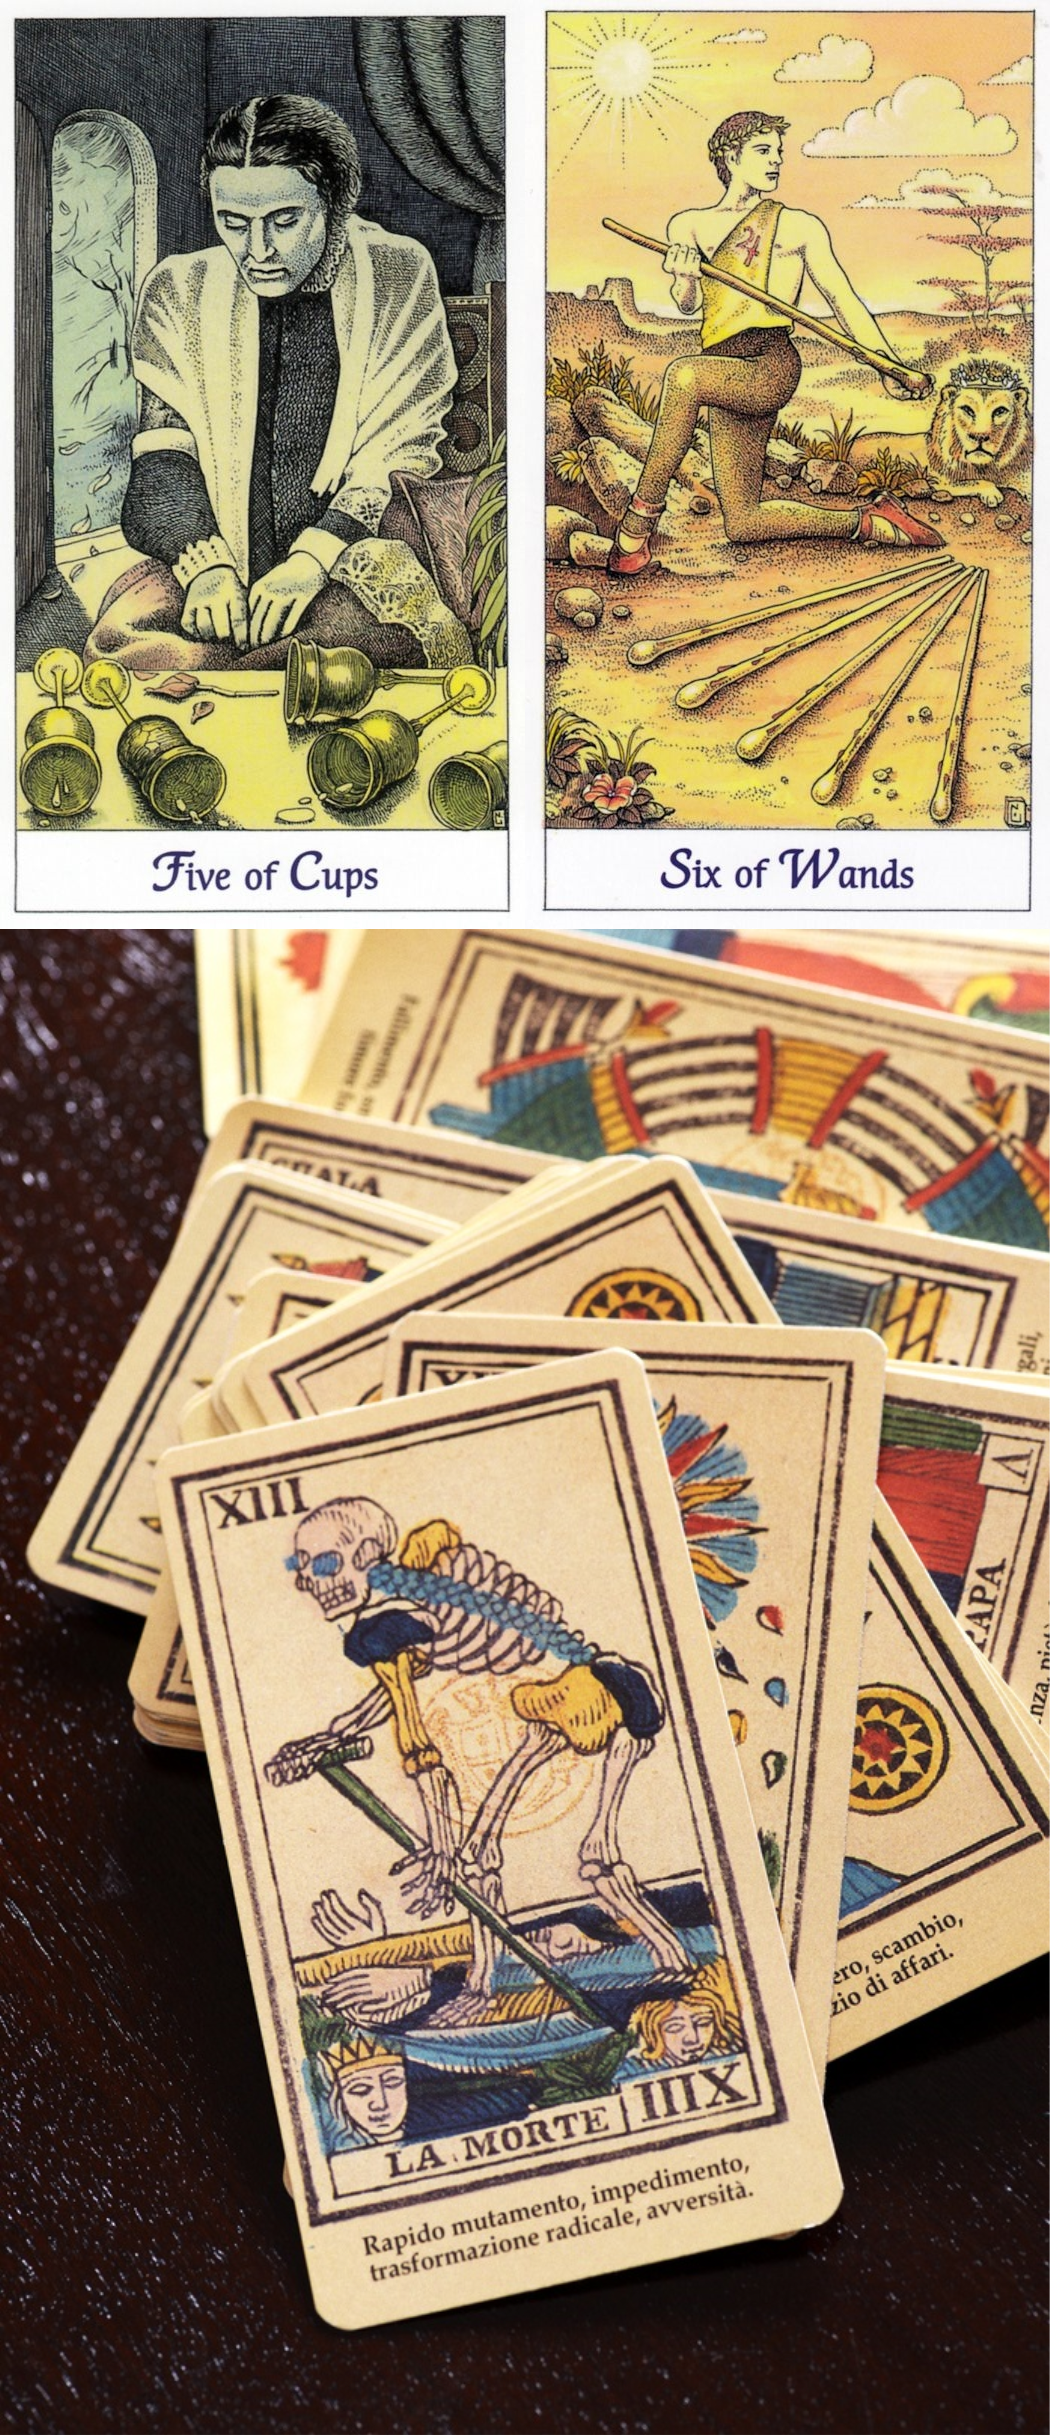 f1f4298caa266a free full tarot reading online, psychic card reading and tarot yes, free  tarot reading yes or no and tarot suits.